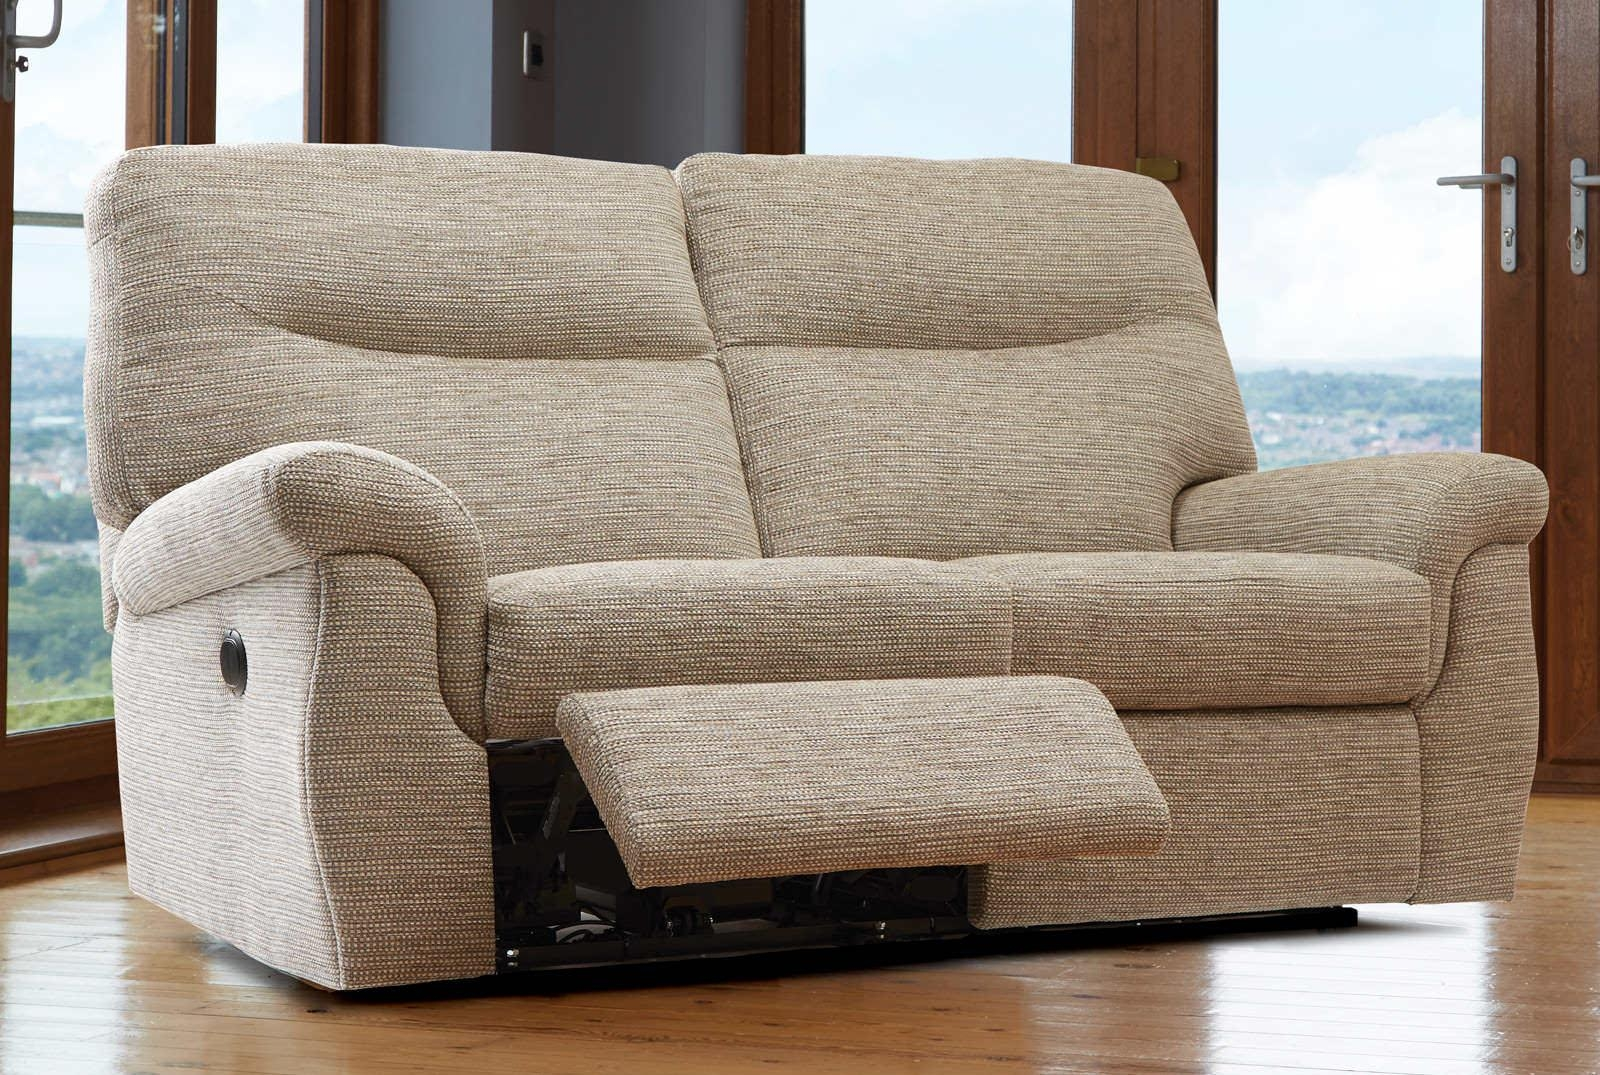 Recliner 2 Seater Sofa – Leather Sectional Sofa Inside 2 Seat Recliner Sofas (View 12 of 20)